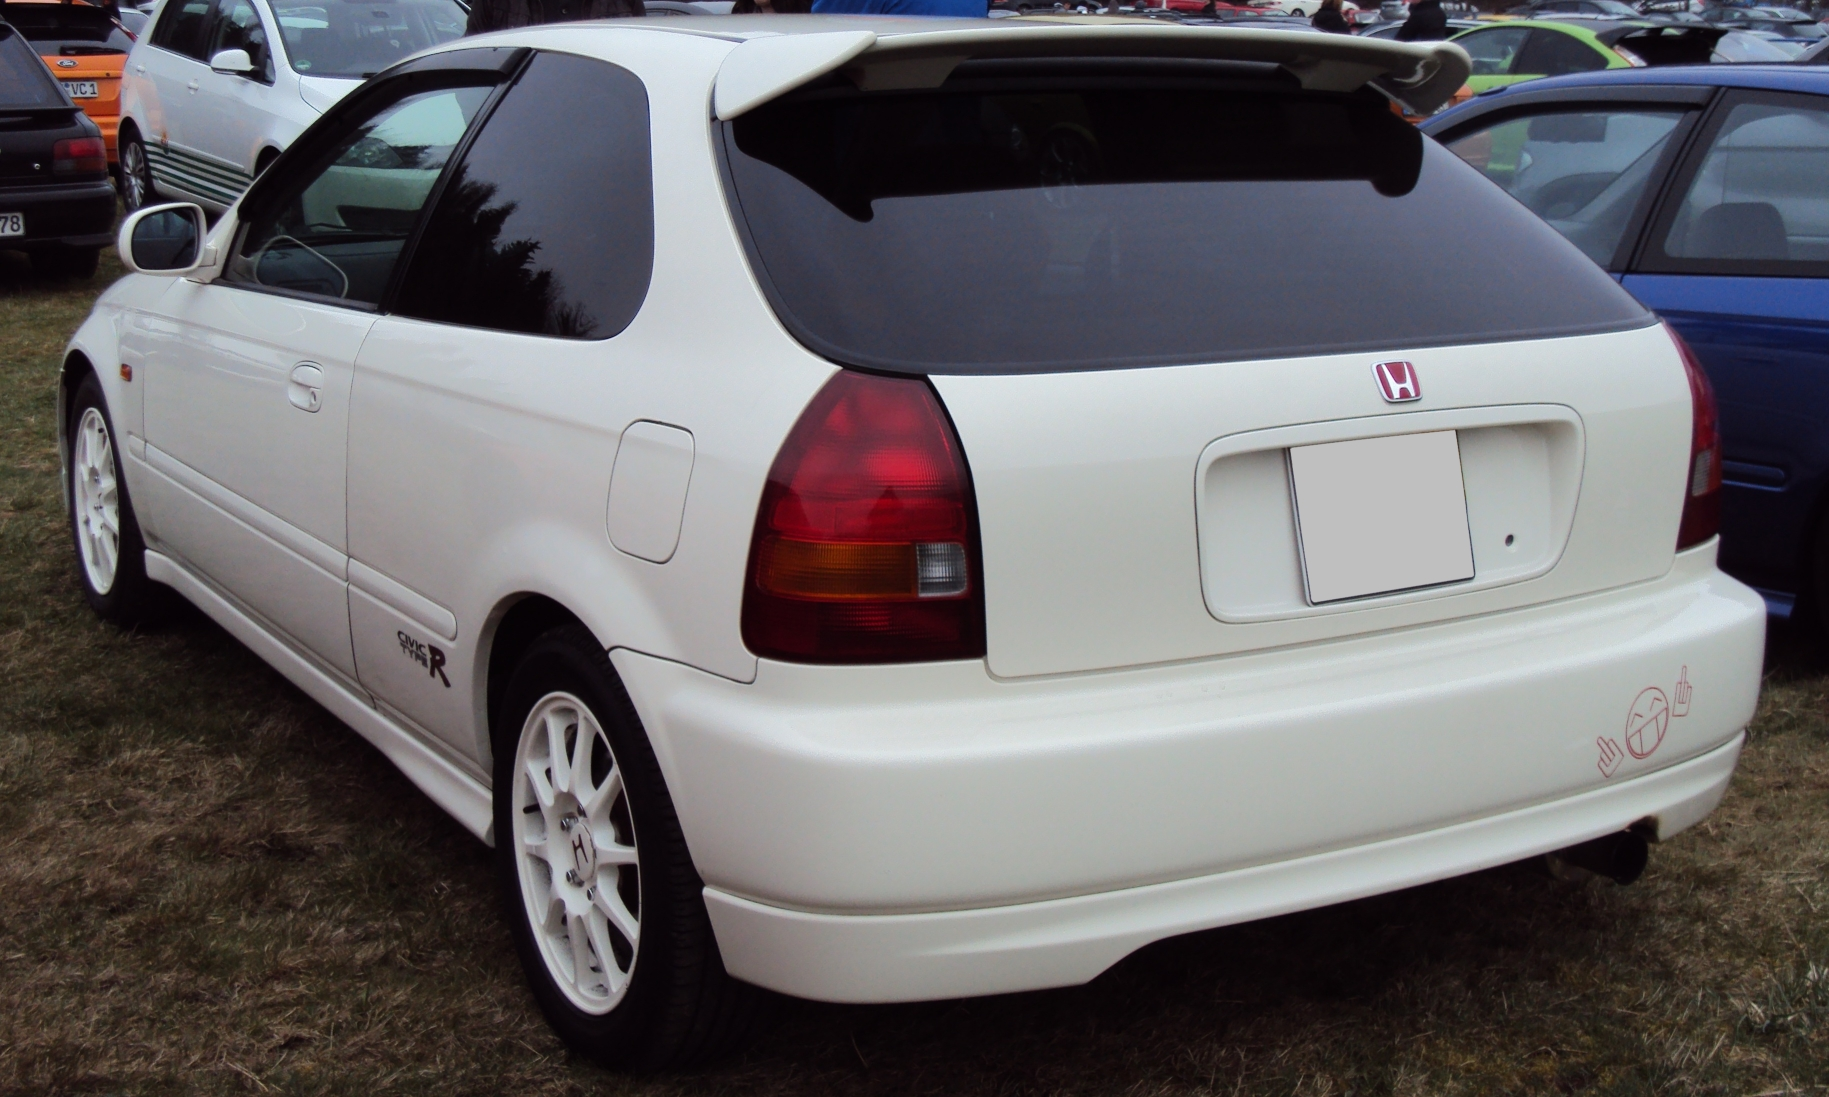 File:Civic Type R rear.JPG